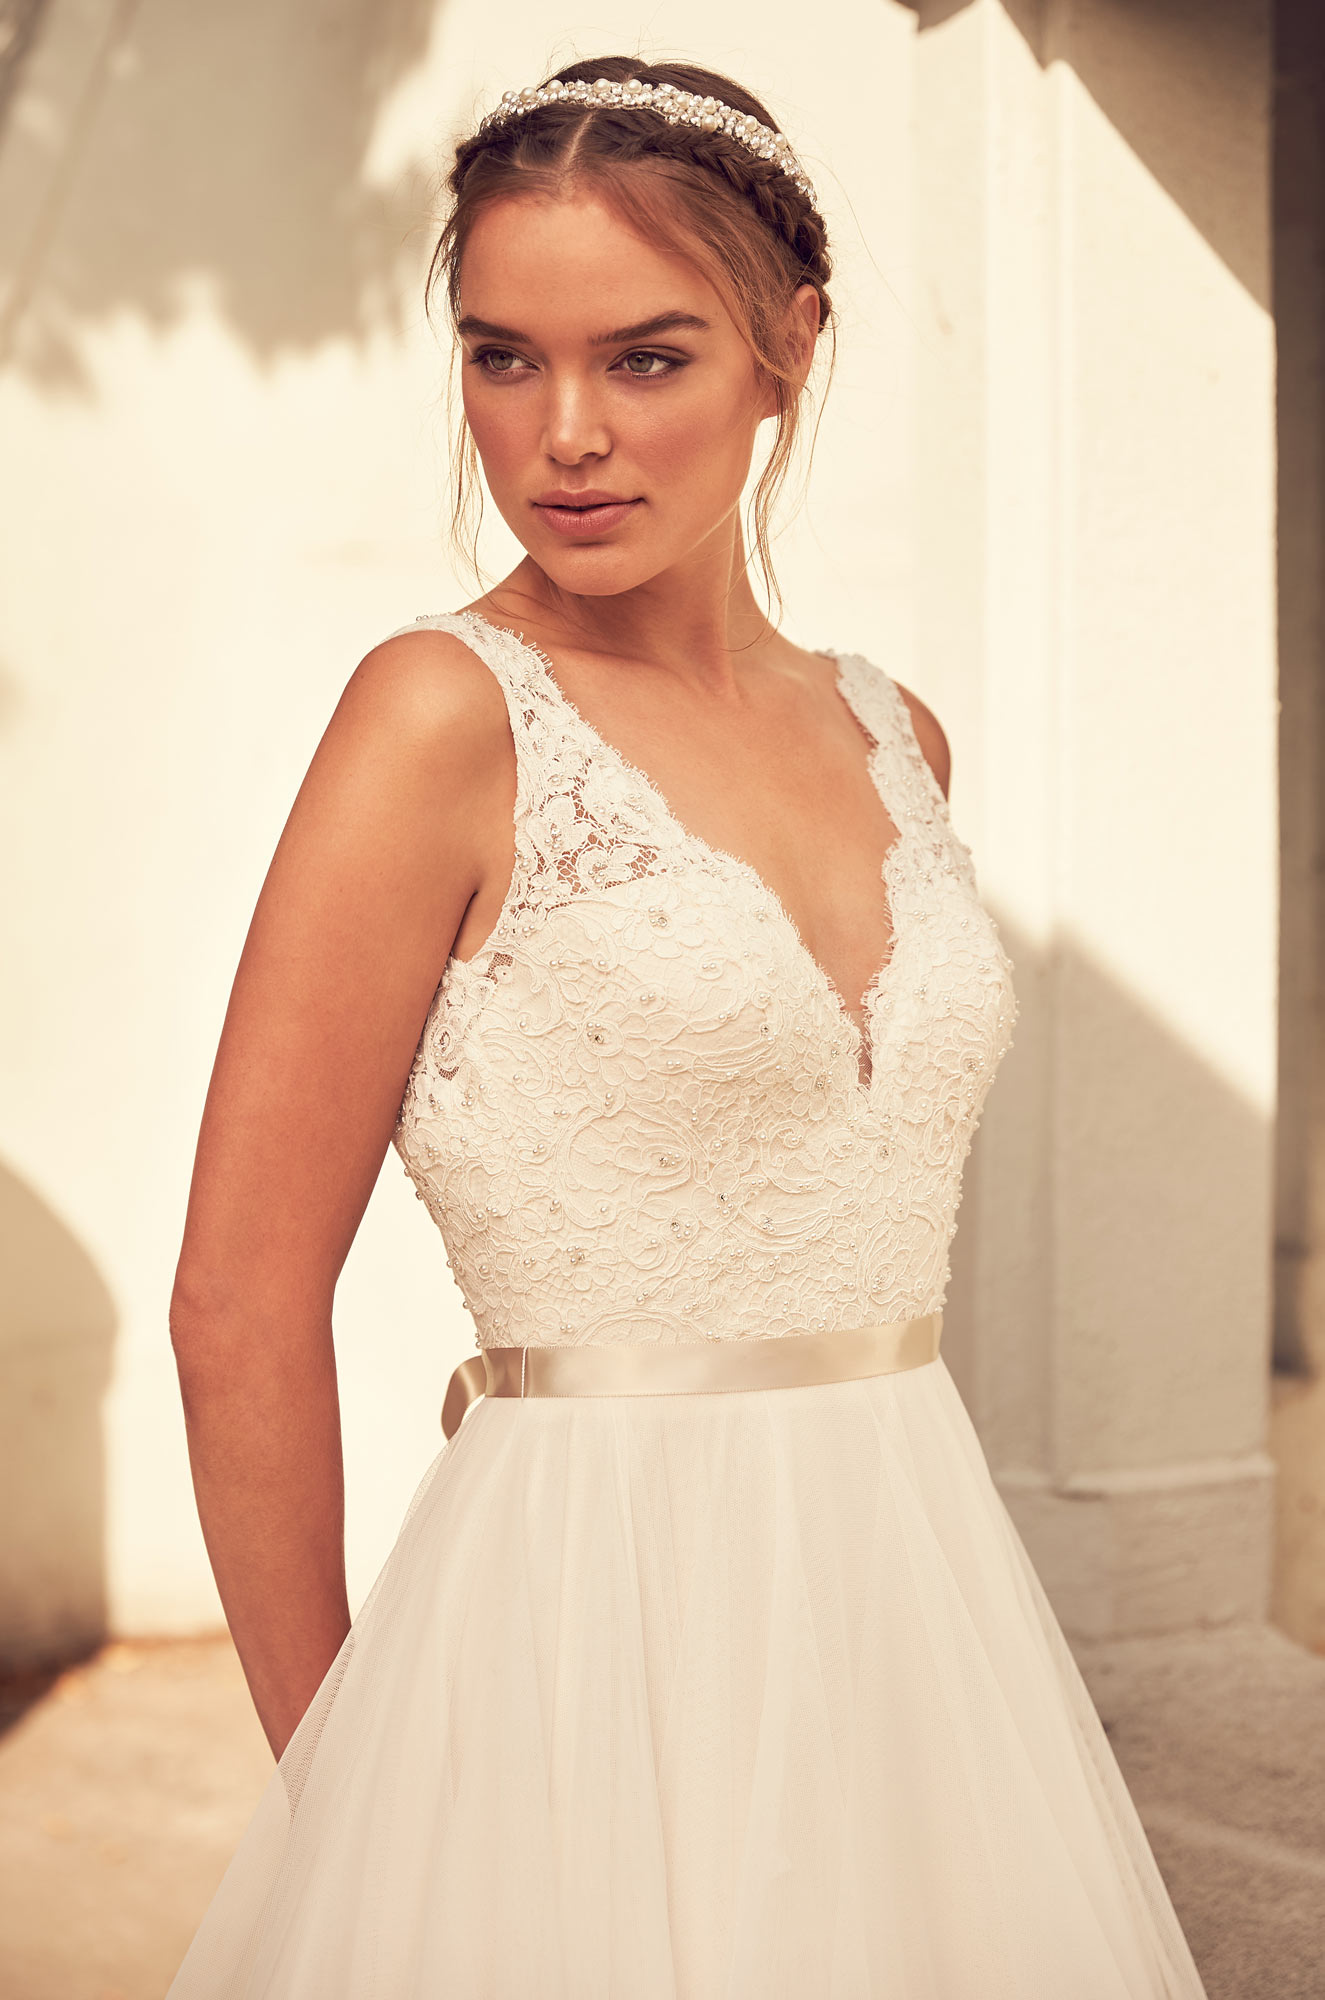 Lightly Beaded Bodice Wedding Dress - Style #4798 | Paloma Blanca